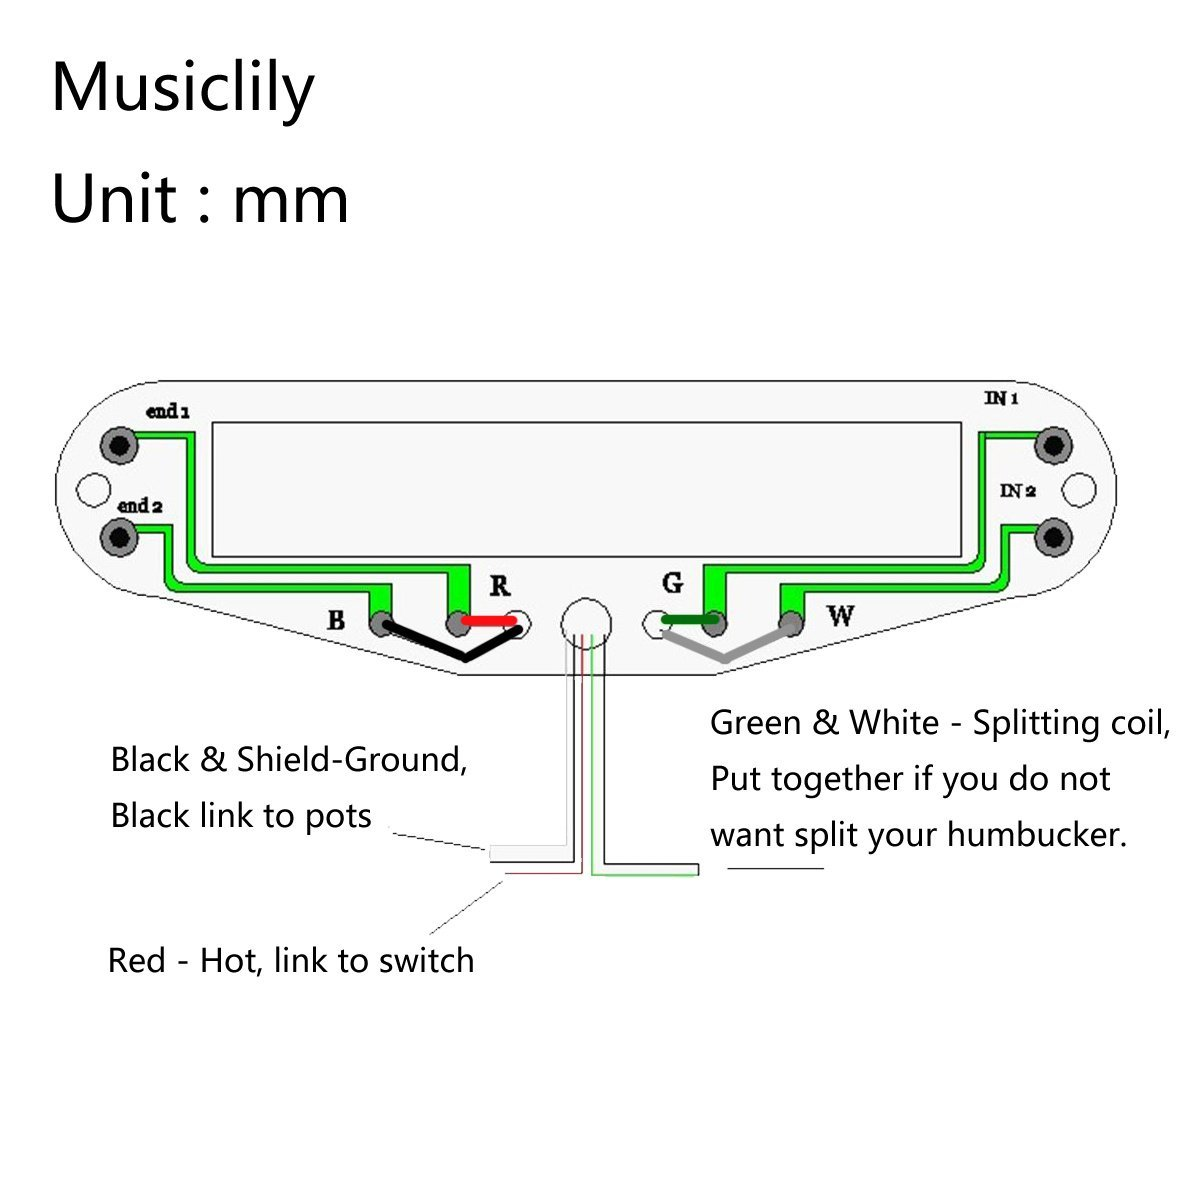 Single Hot Rail Wiring Diagram Most Uptodate Info Coil Pickup Diagrams Size Blaster Strat Humbucker Electric Guitar Rh Ebay Com